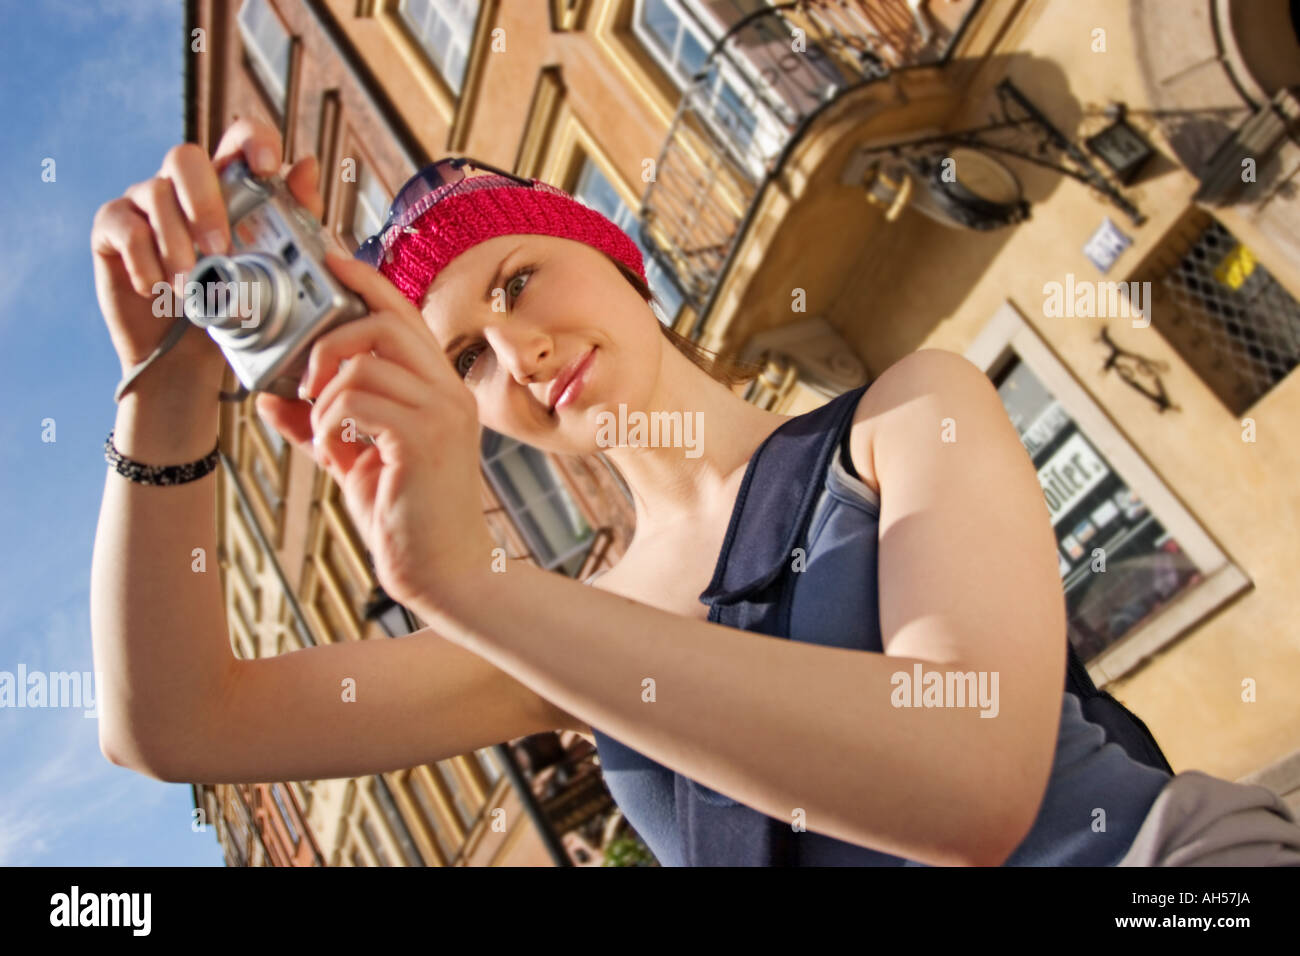 outdoor day summer building buildings architecture tenement tenements young woman 25 30 cap sunglasses dark smile smiling tou - Stock Image